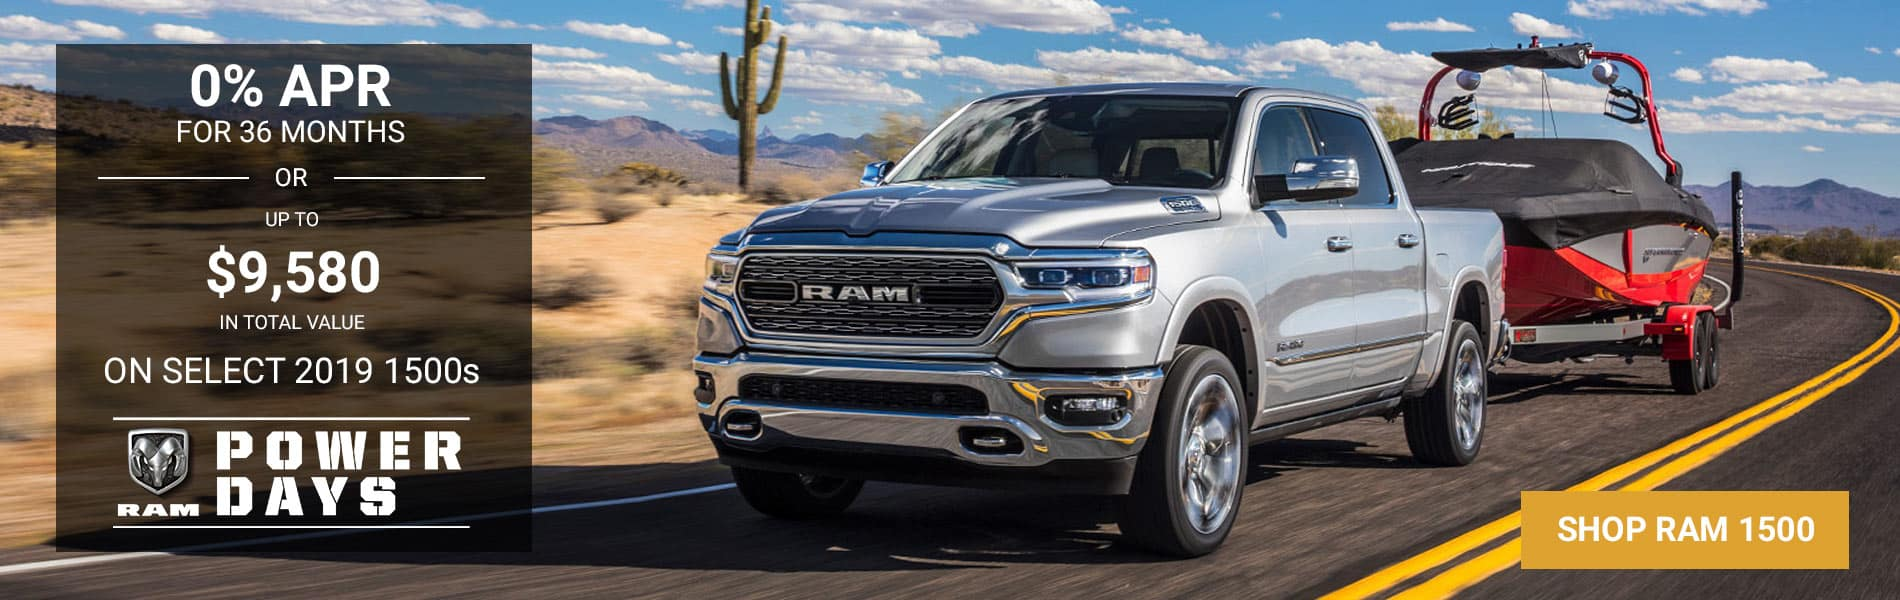 0% APR for 36 months or up to $9,580 off MSRP on select 2019 1500s